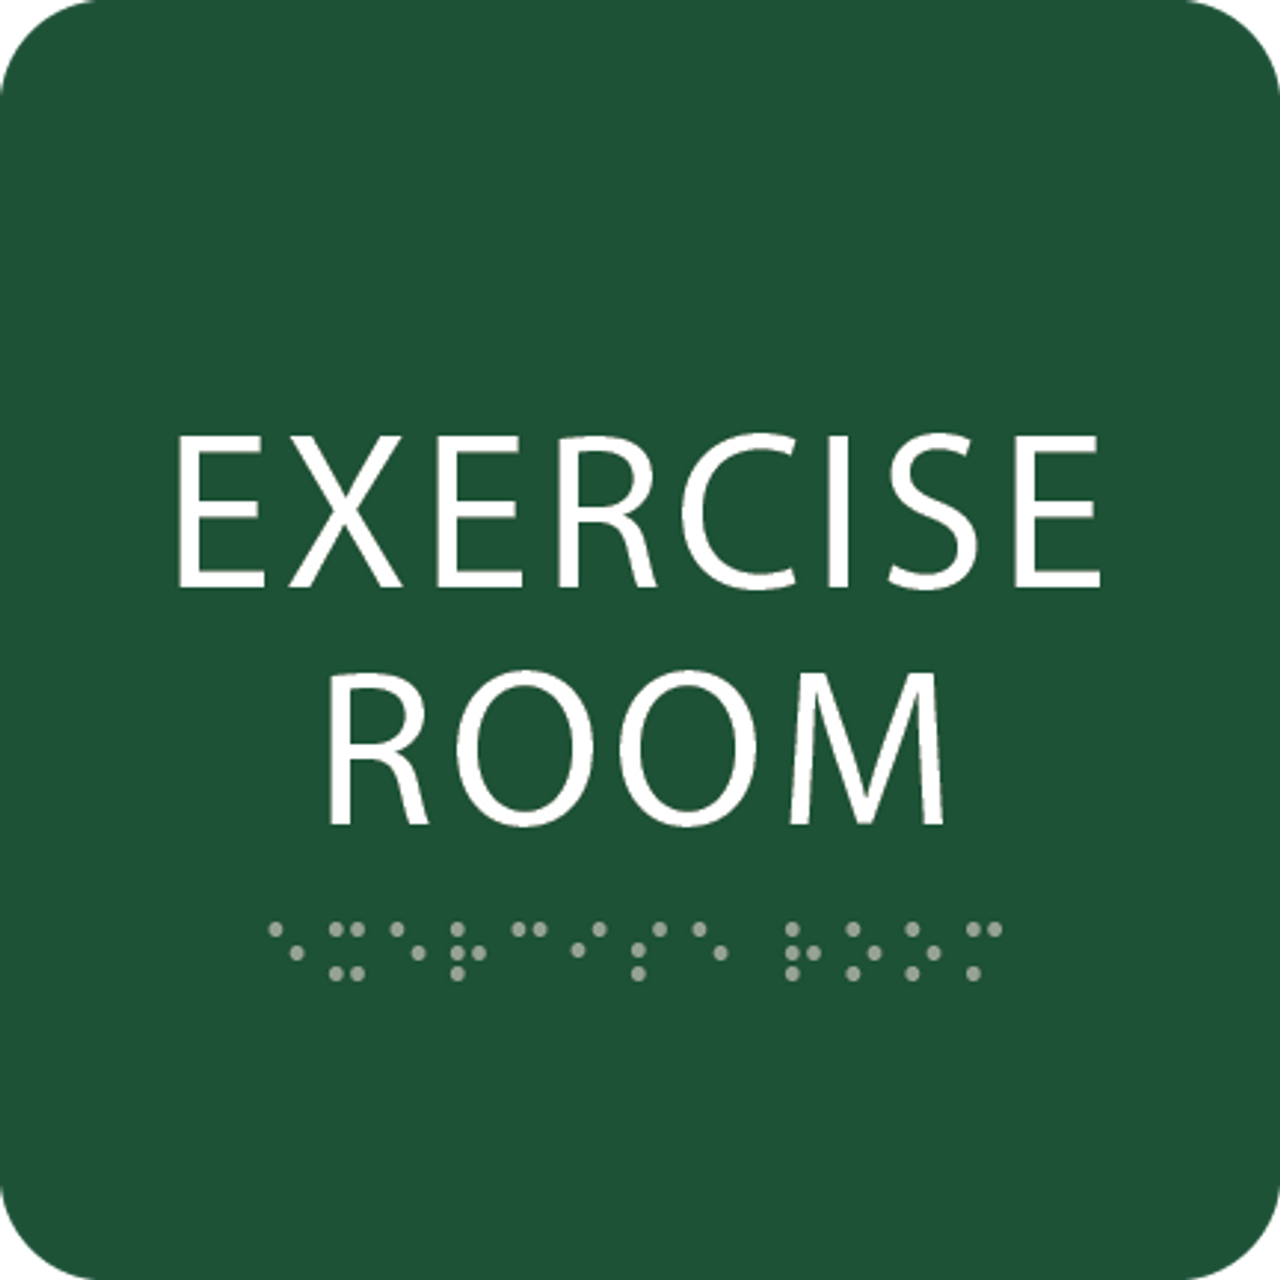 Green Exercise Room ADA Sign